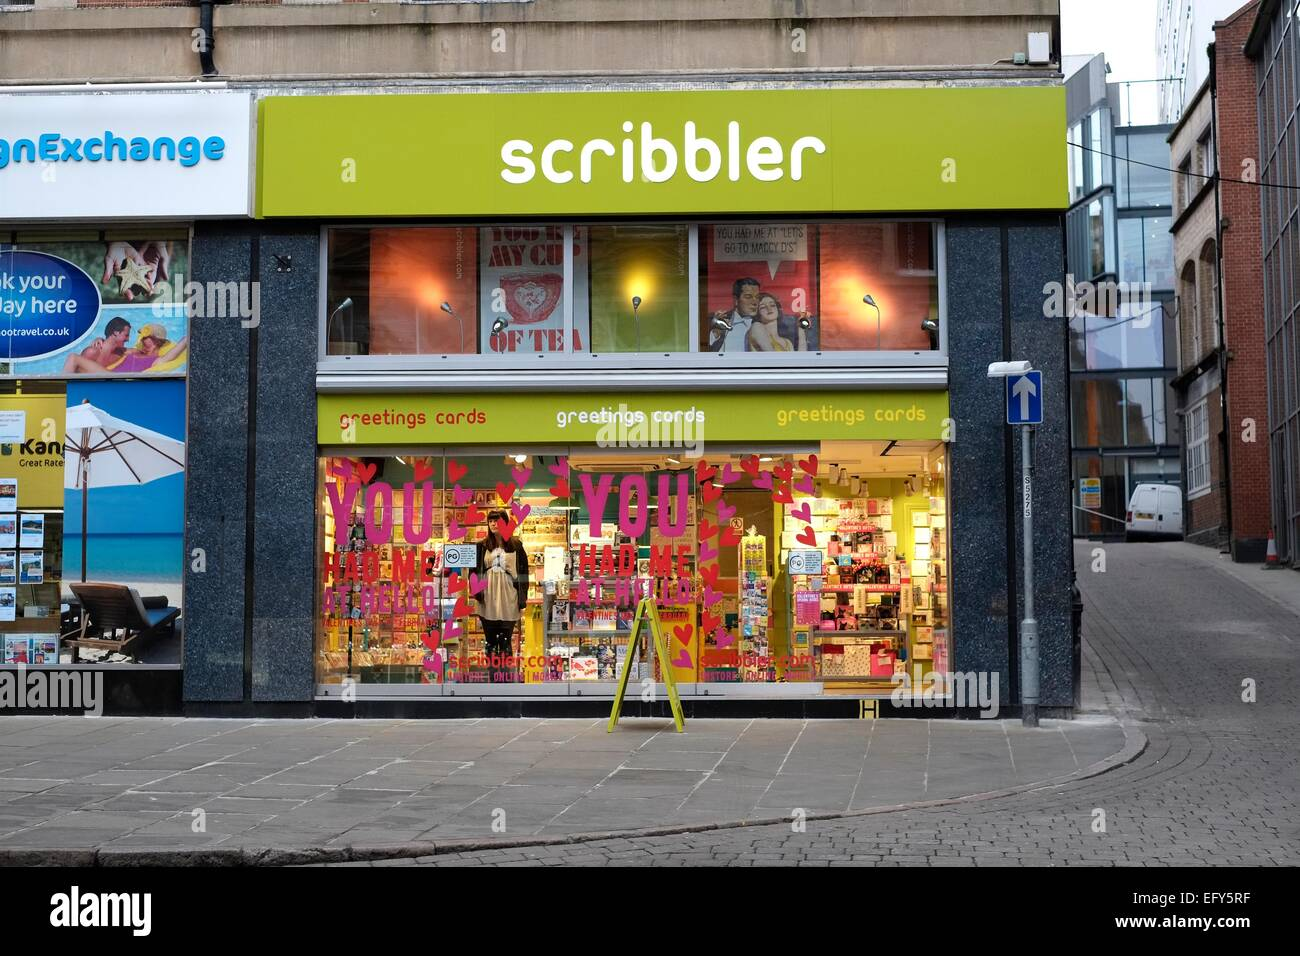 Scribbler greeting card shop nottingham england uk stock photo scribbler greeting card shop nottingham england uk kristyandbryce Images